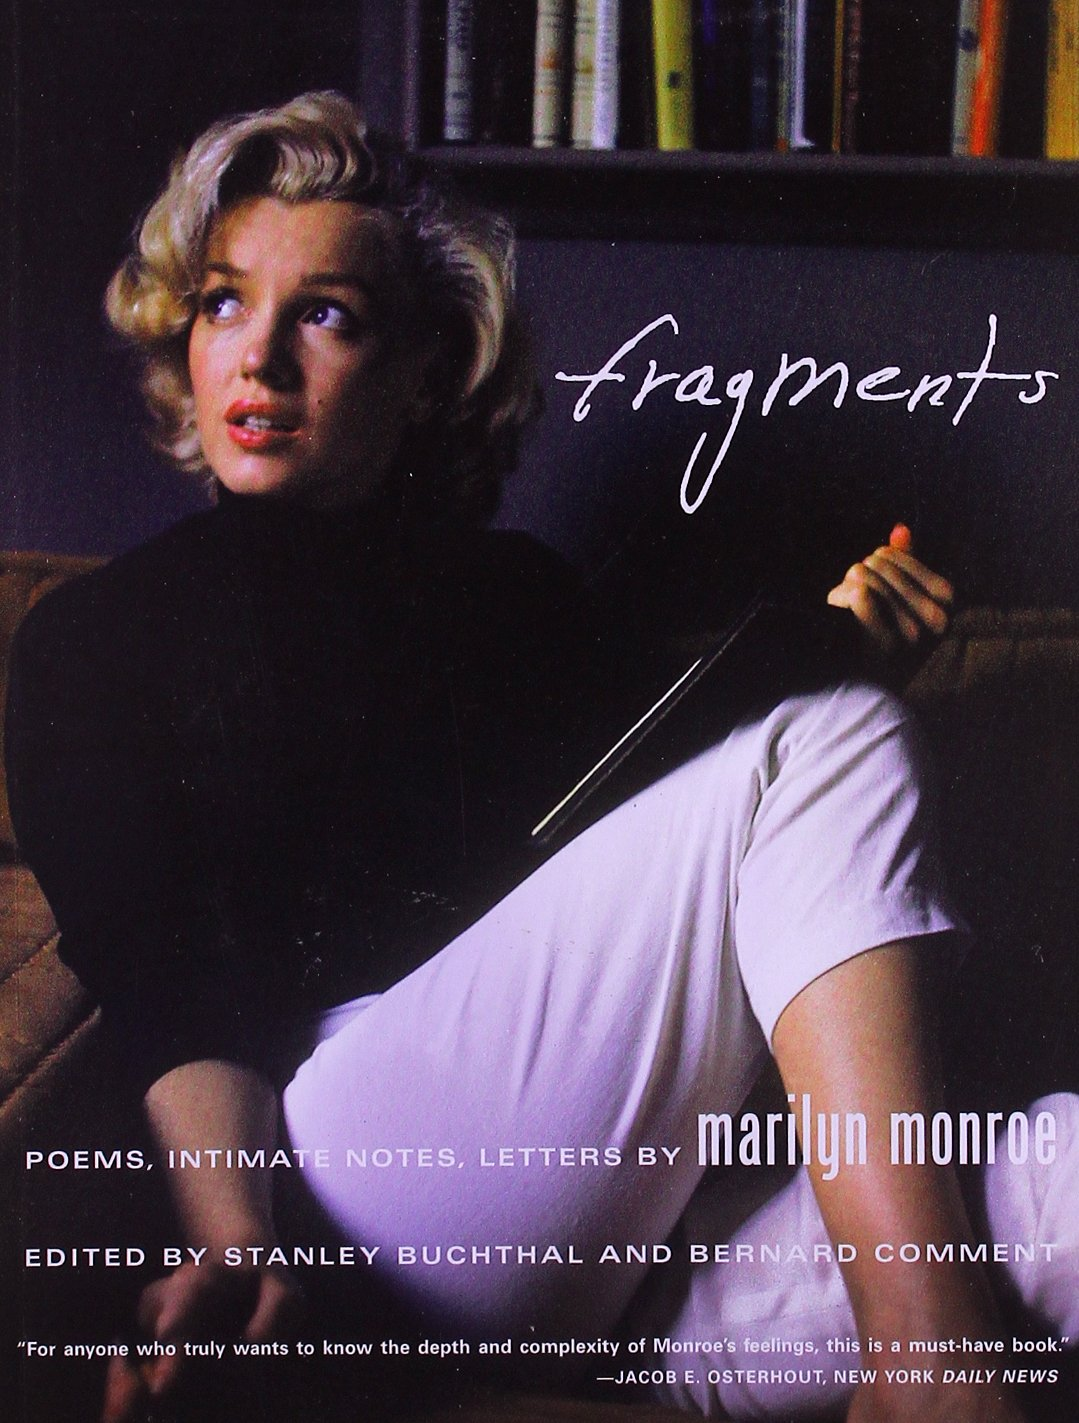 fragments poems intimate notes letters marilyn monroe bernard comment 9780374533786 amazoncom books